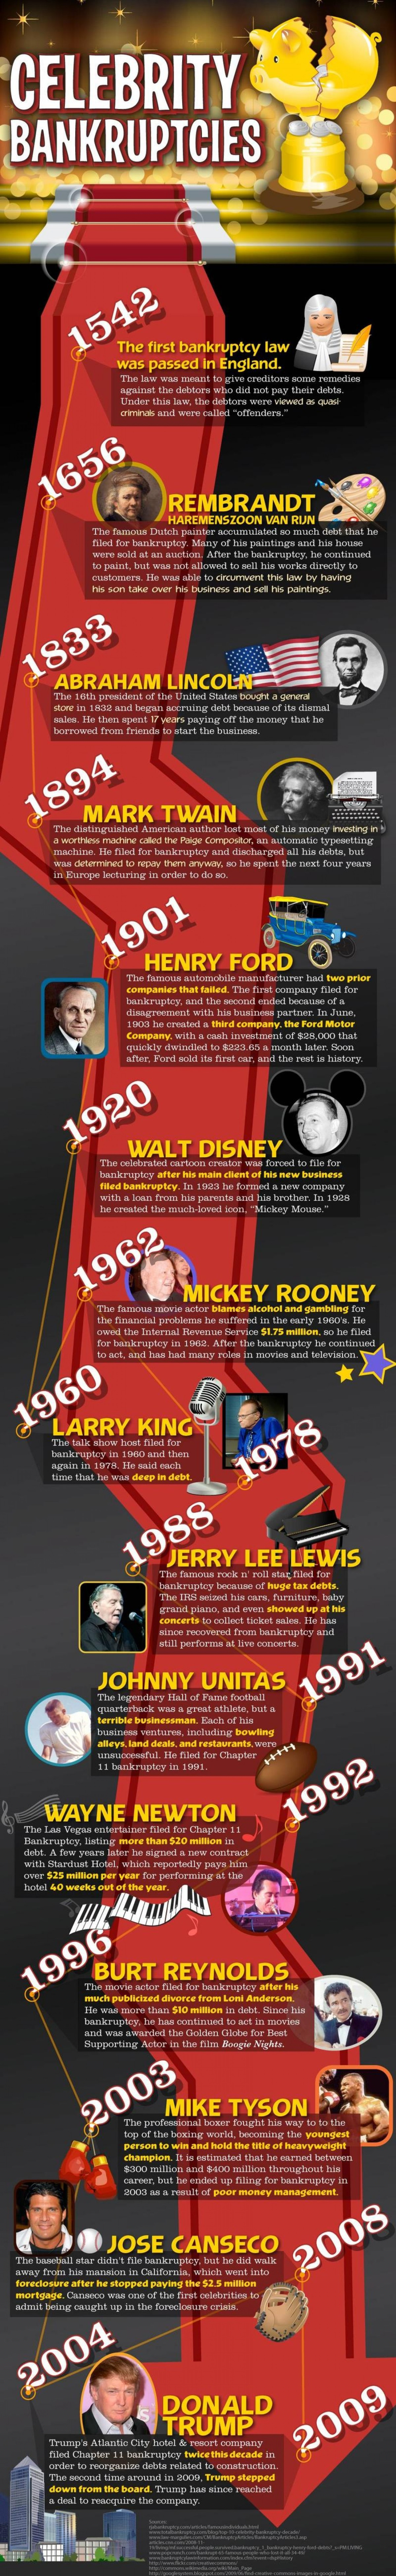 10 Biggest Celebrity Bankruptcies - Insider Monkey